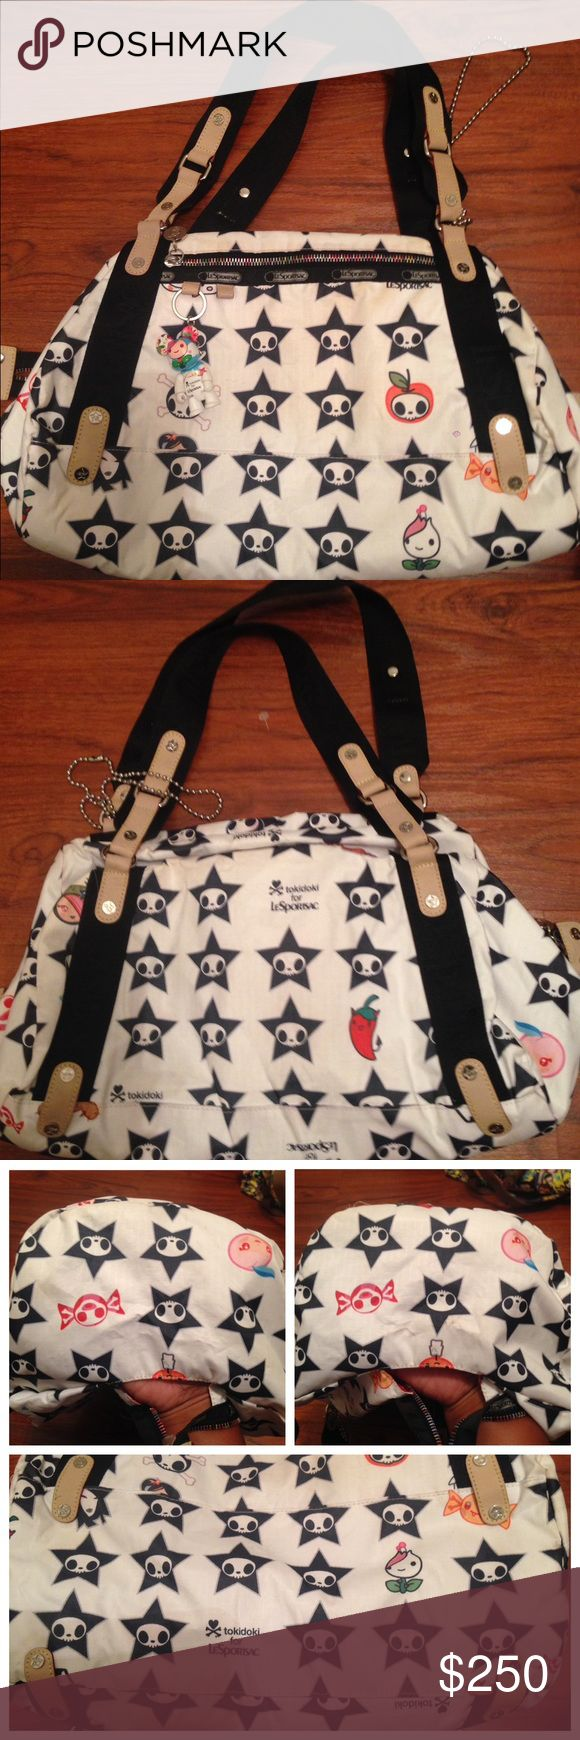 Tokidoki Lesportsac Adios Star Skull Gioco Tokidoki Lesportsac Black White Adios Star Skull Gioco Handbag Purse Bag Qee  PreLoved  Has Qee   RIRI zipper , runs smooth   Corners and stitching is tight  Liner is very clean   Bottom a little dirty not really noticeable tokidoki Bags Satchels